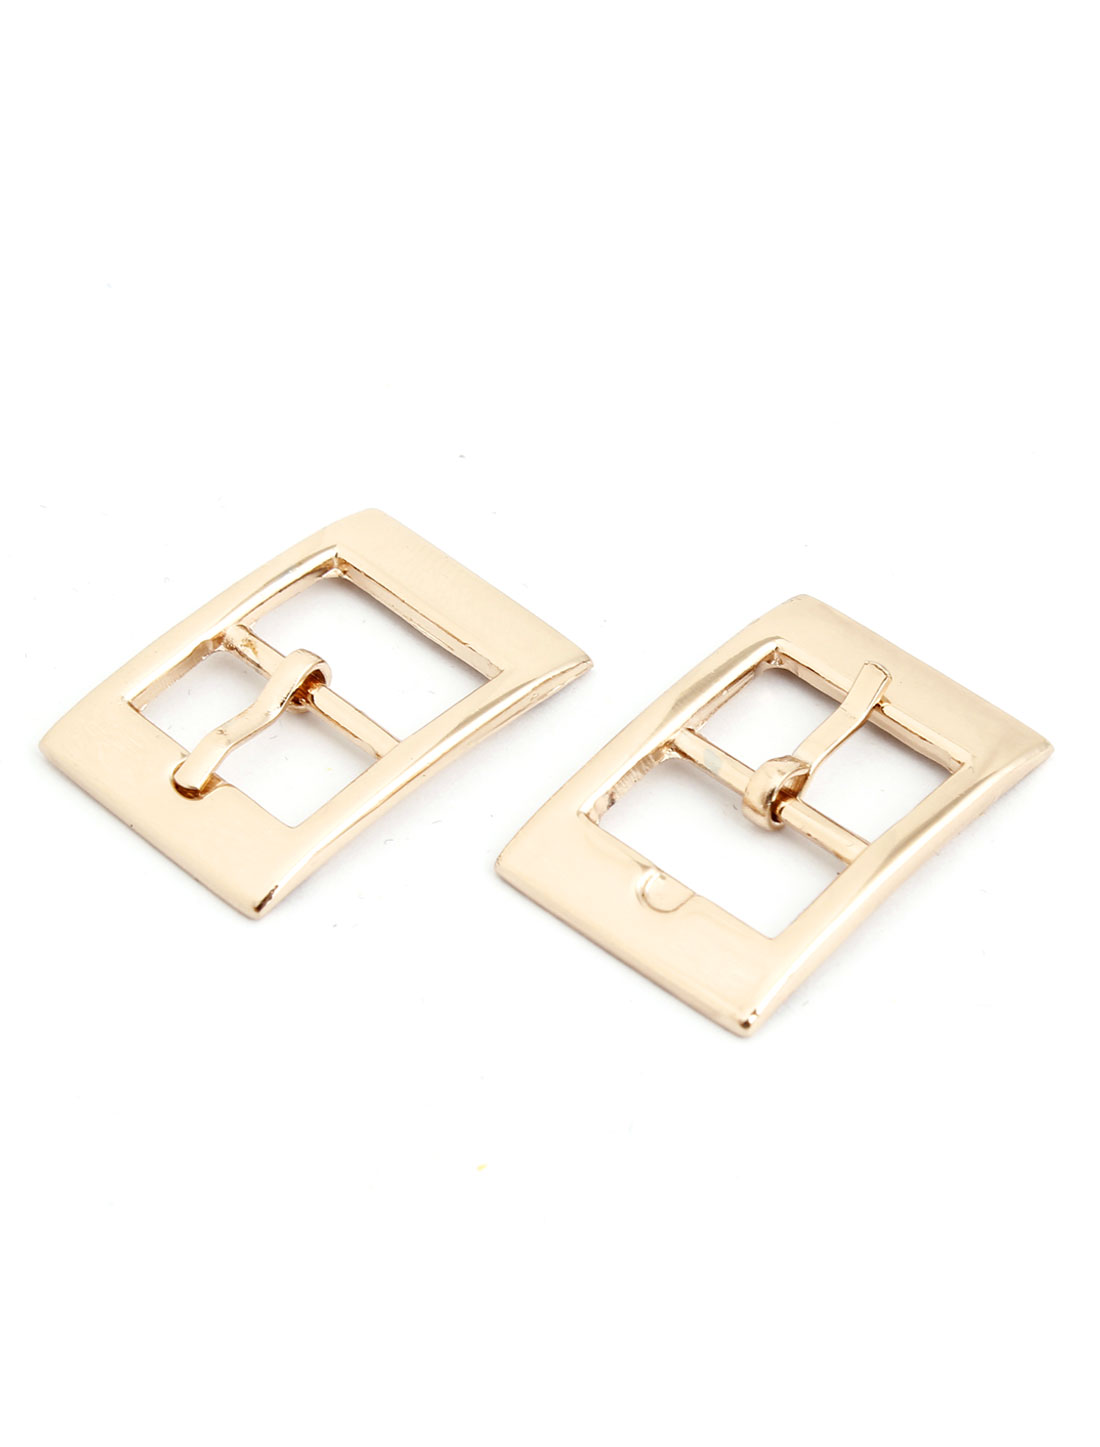 2 Pcs Gold Tone Metal Retangle Leather Shoes Ornament Needle Buckles